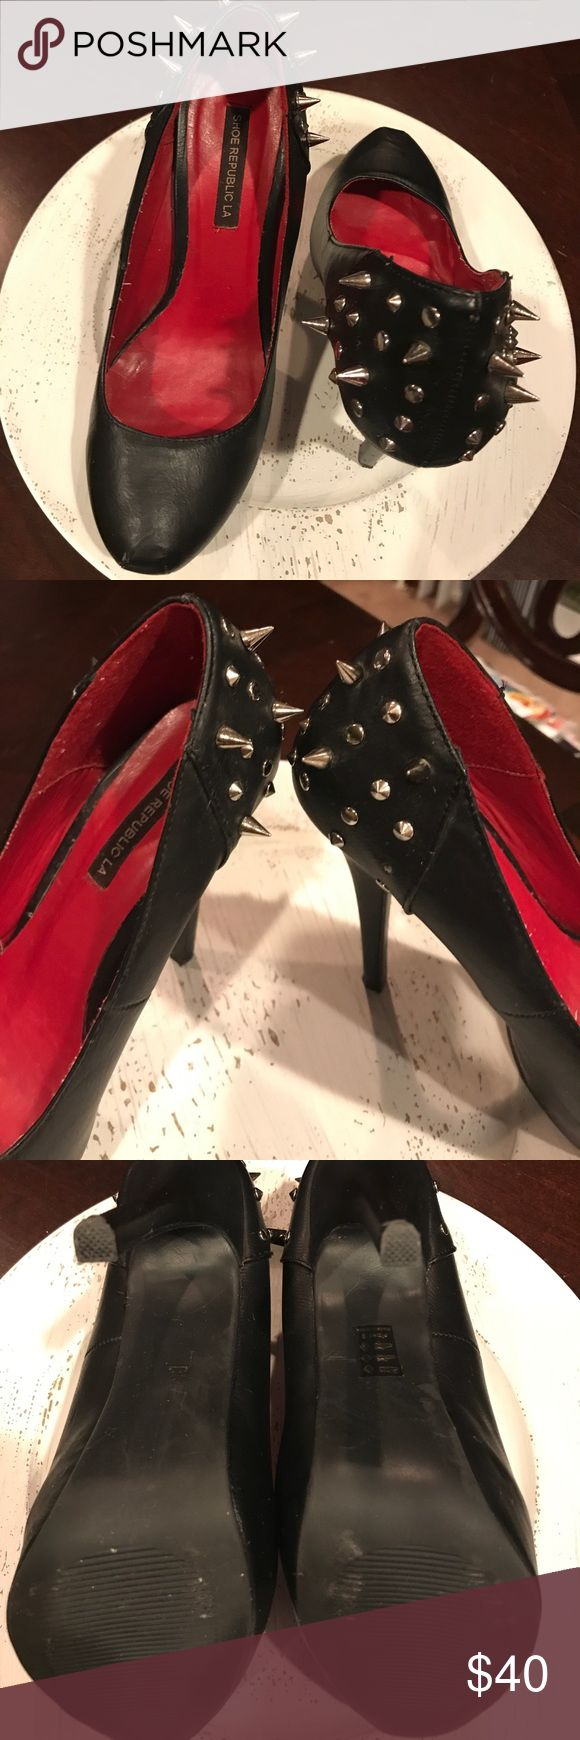 Gorgeous Black Stilettos 👠 with Metal Spikes!!! Gorgeous Black Stilettos 👠 with Metal Spikes!!!  I love these shoes but I injured my back and 5 inches are too much for me. Only wore a couple times. Bought at a Boutique in town and held onto them because they looked awesome in my closet but they belong with someone who will Rock them! There is one missing spike hardly noticeable but pictured. Shoe Republic LA Shoes Heels